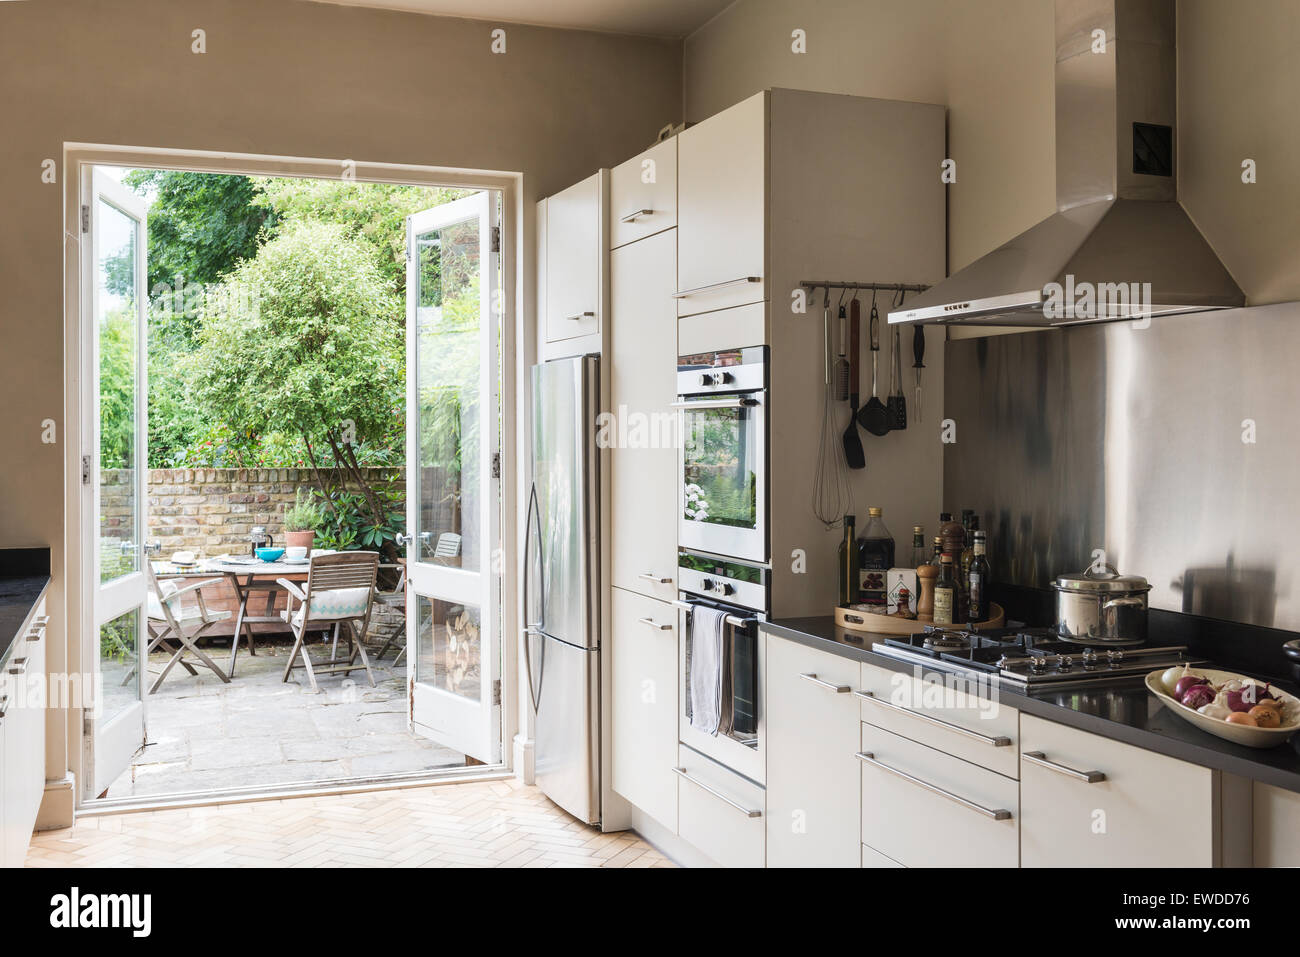 Garden Kitchen Windows French Windows Open Onto Garden From Kitchen Area With Stainless